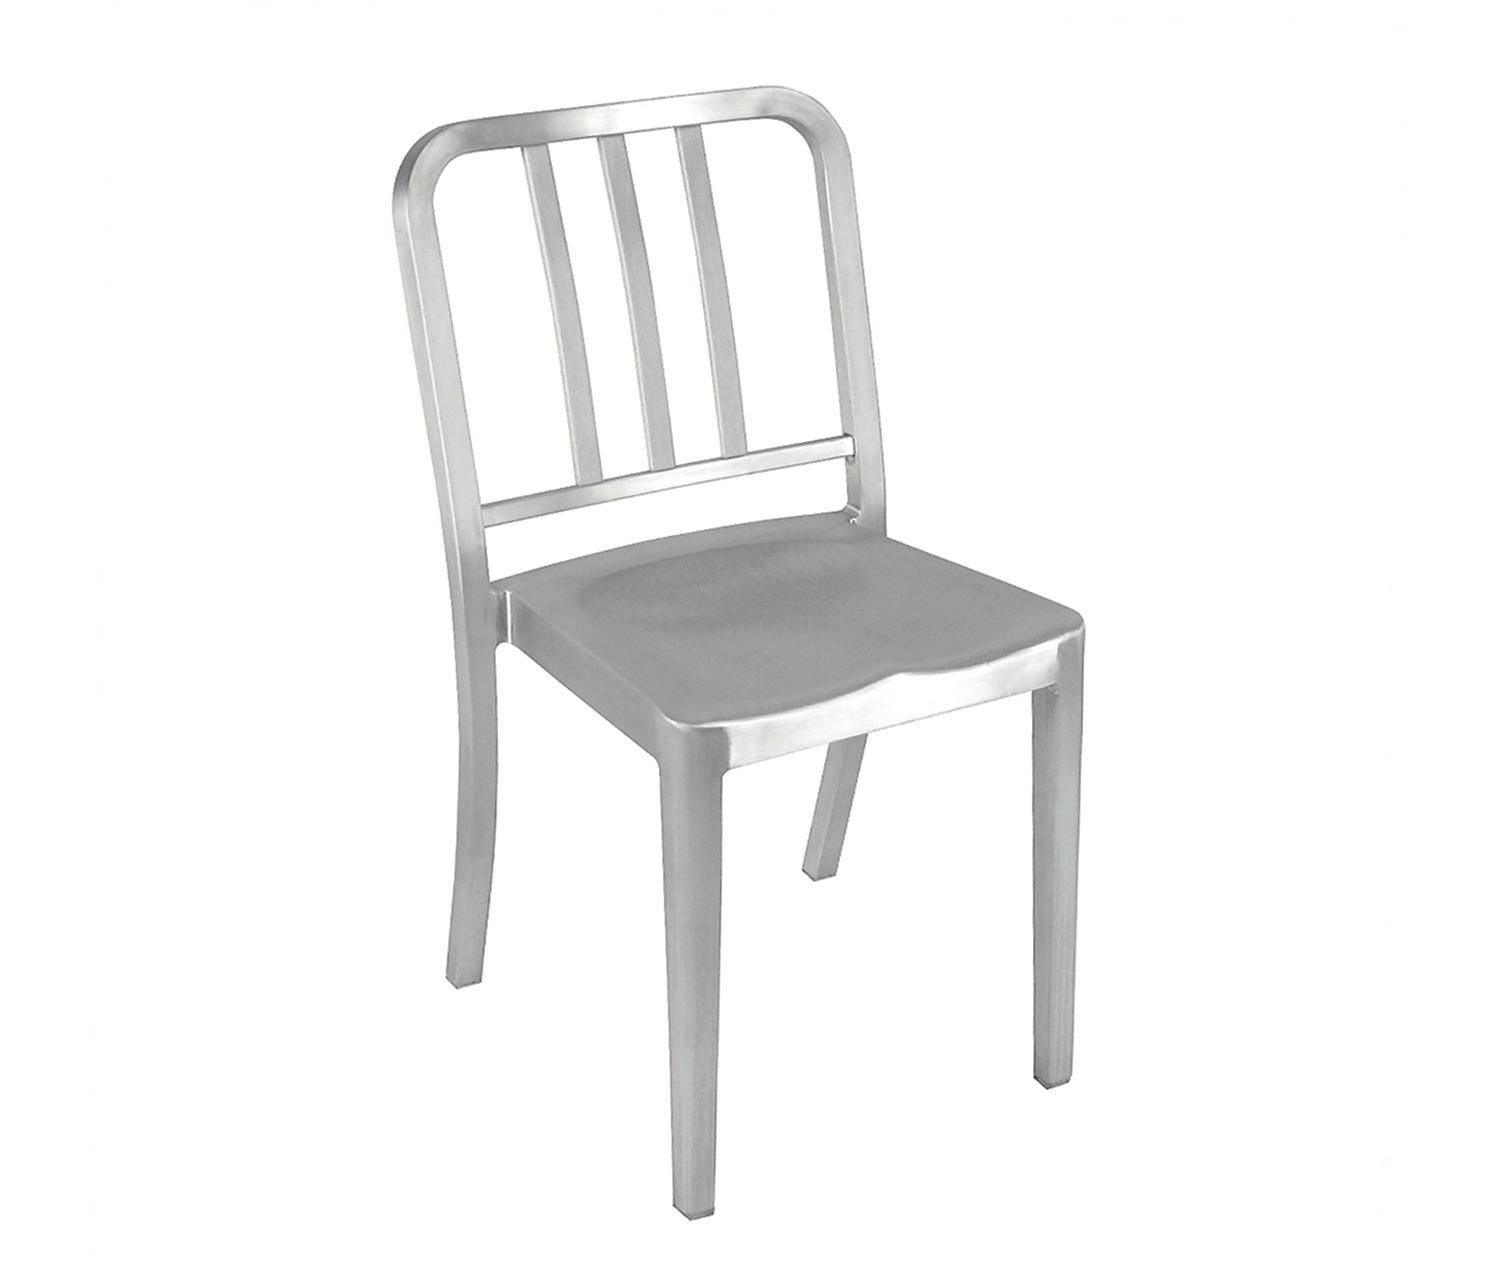 heritage stacking chair  restaurant chairs from emeco  architonic -  heritage stacking chair by emeco  restaurant chairs